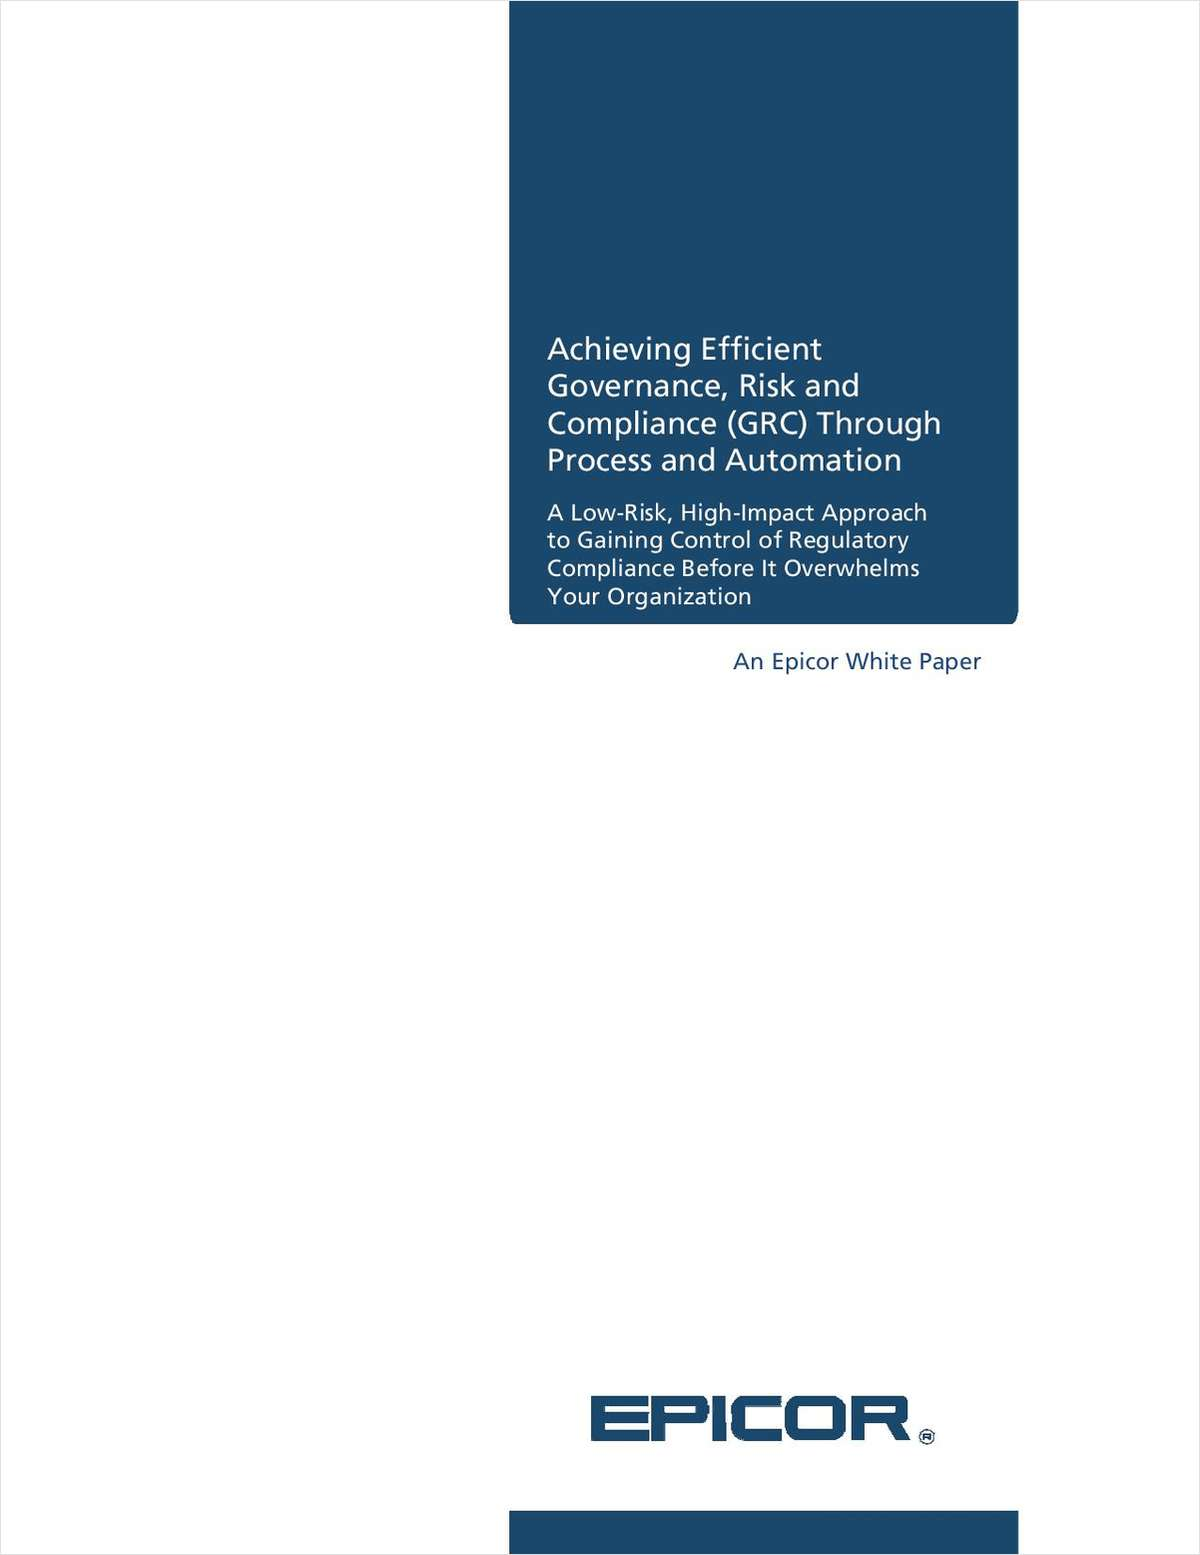 Achieving Efficient Governance, Risk and Compliance (GRC) for Financial Services through Process and Automation